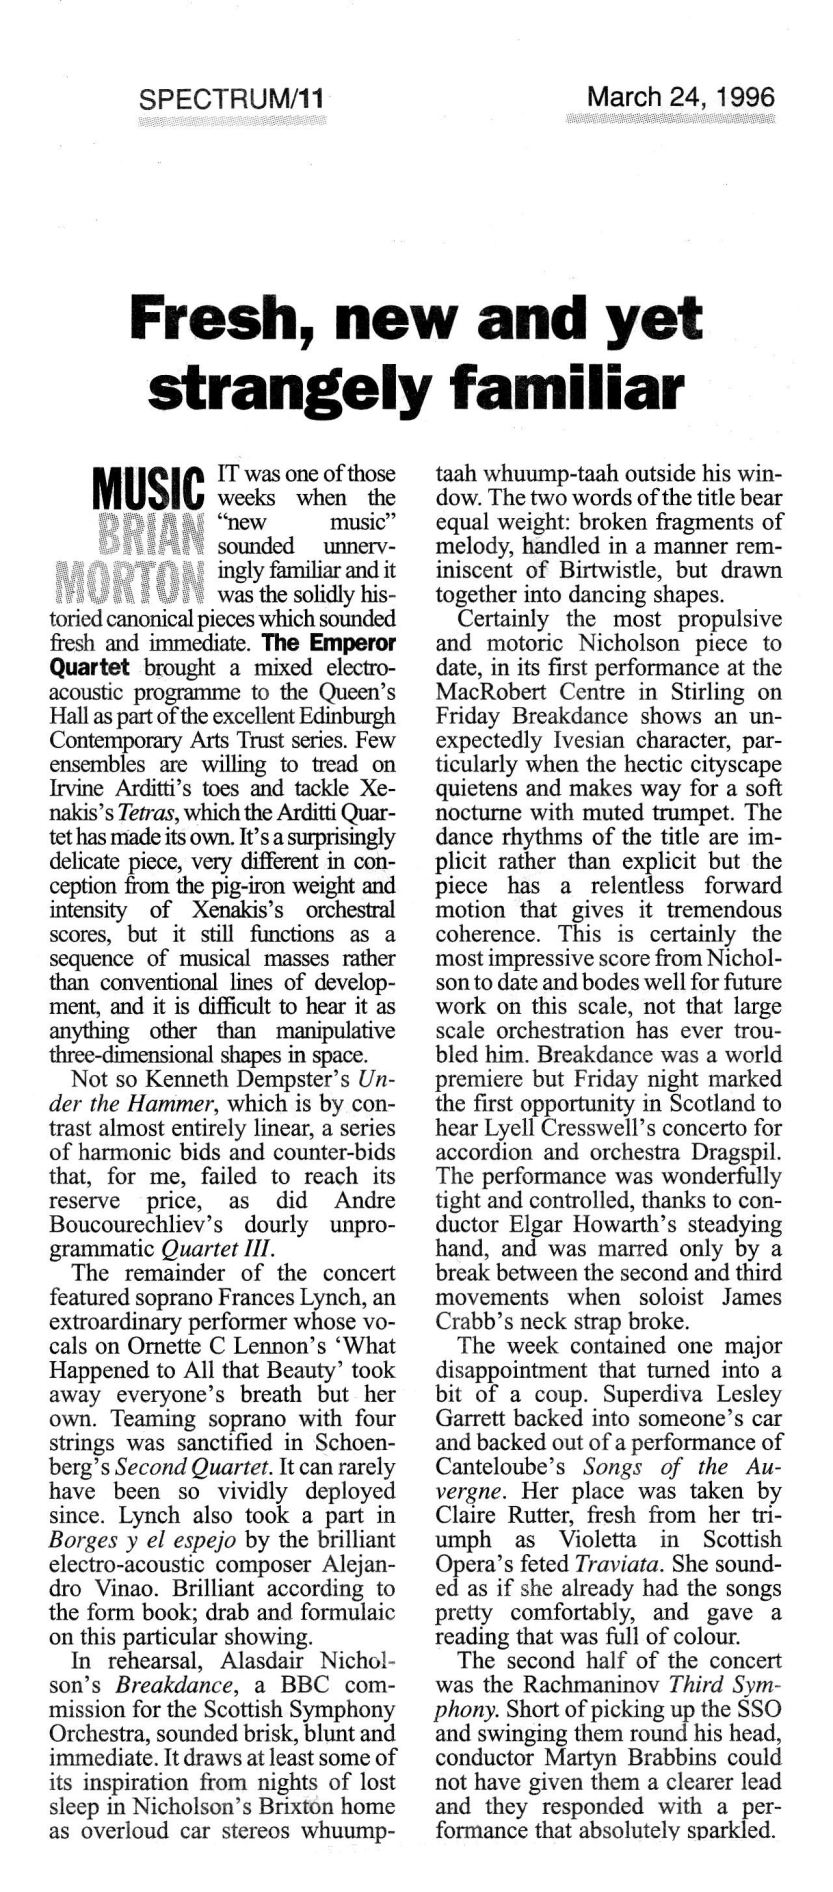 Morton, B. (1996) Fresh, new and yet strangely familiar. Spectrum (The Scotsman), Sunday March 24th.